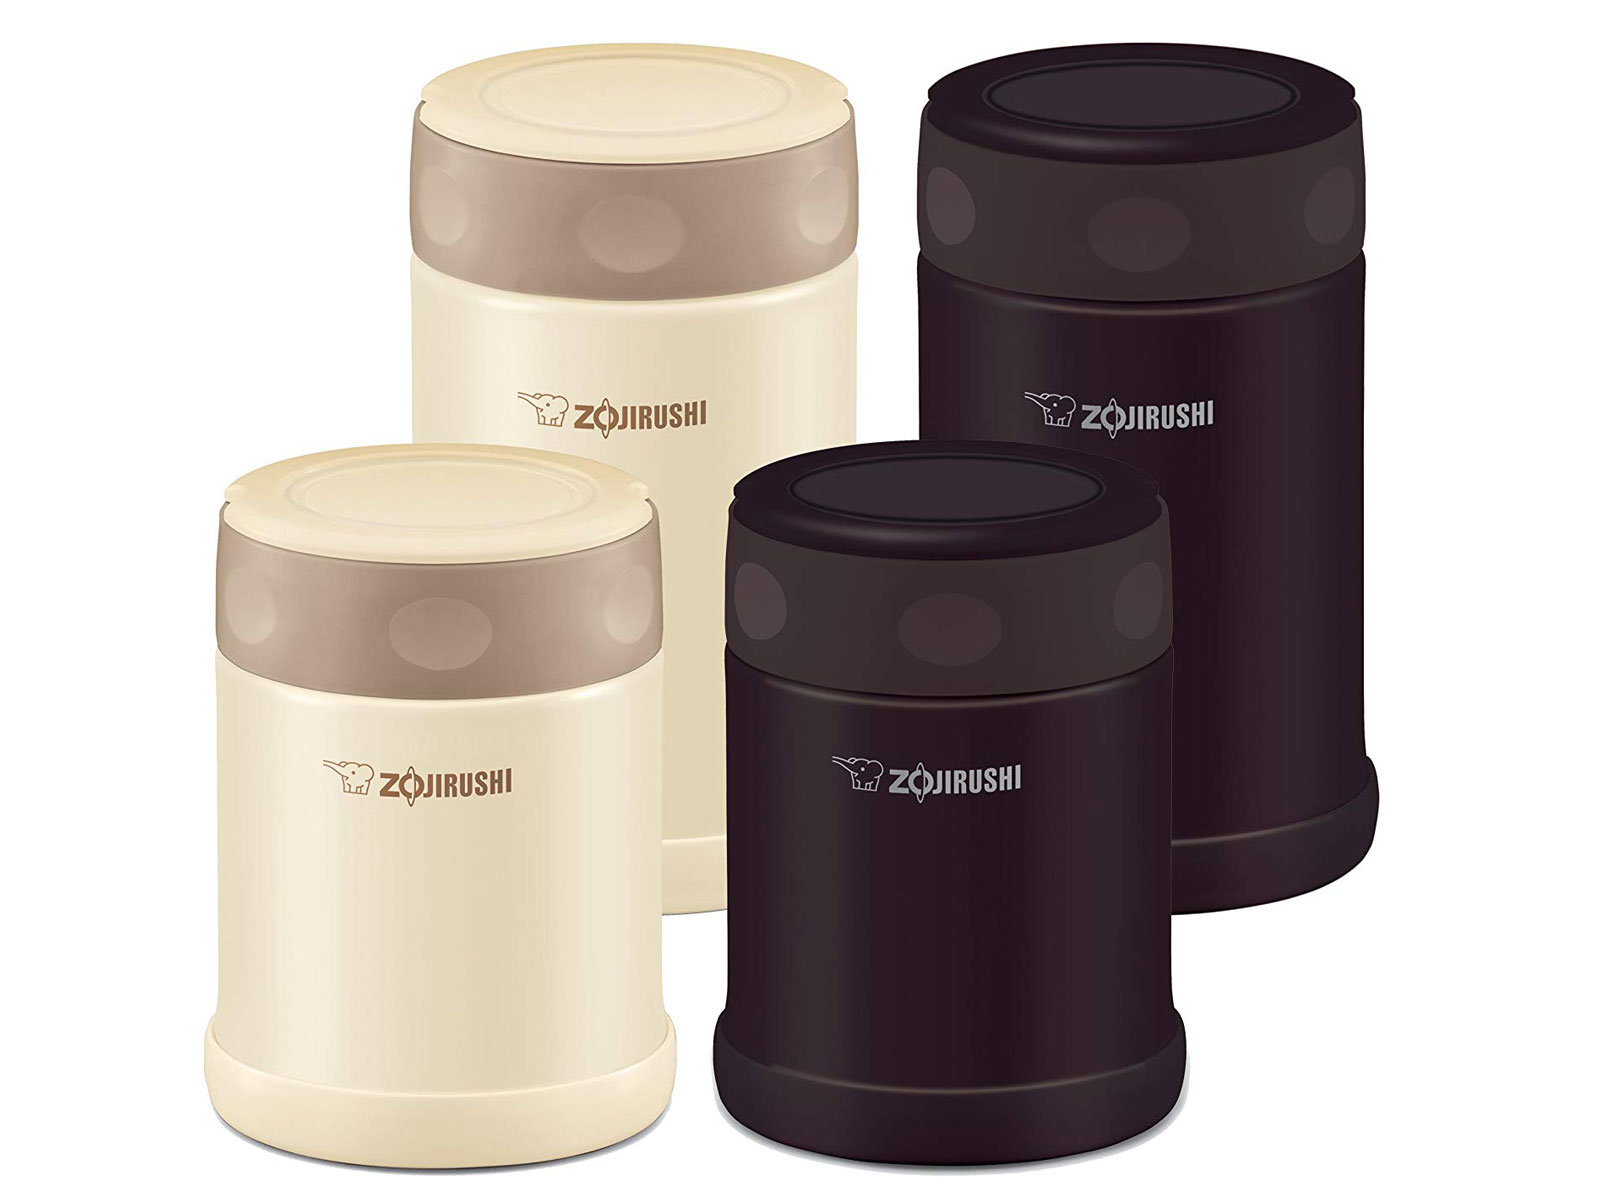 zojirushi soup containers